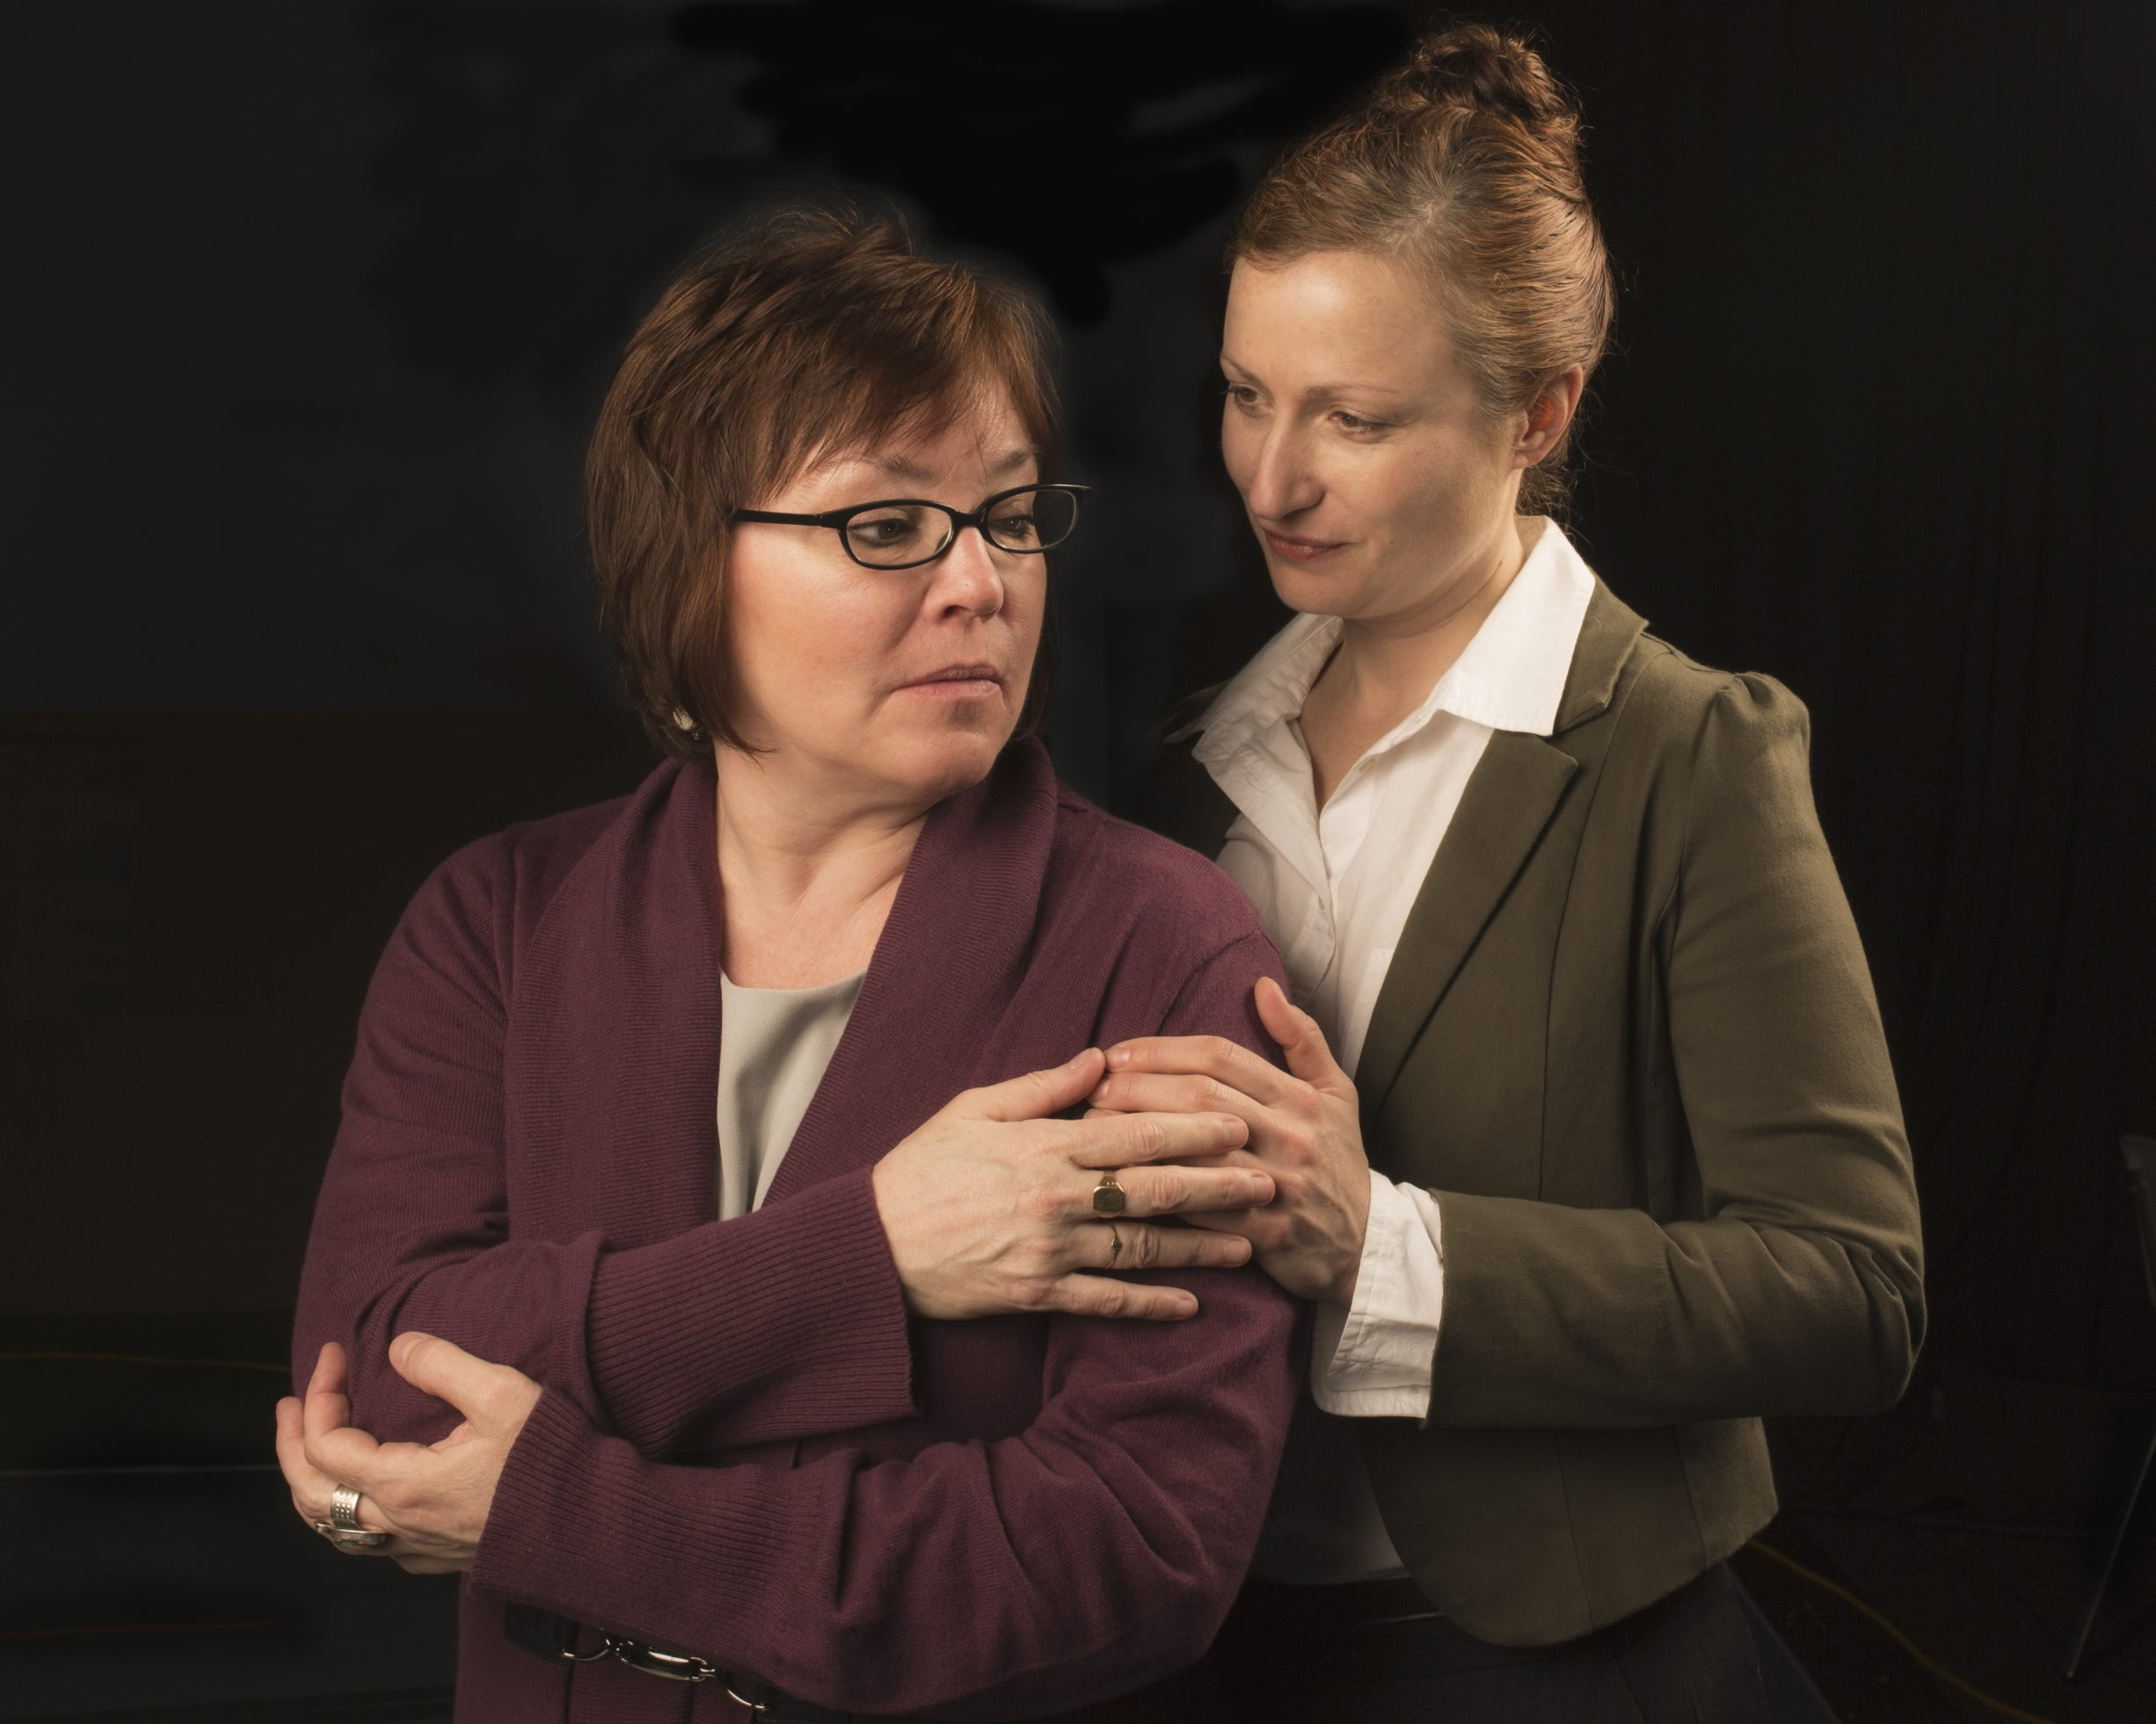 Eileen Dugan and Kirsten Tripp Kelley appeared in Jewish Repertory Theatre's production of 'Body Awareness,' part of their award-winning 2013-14 season.